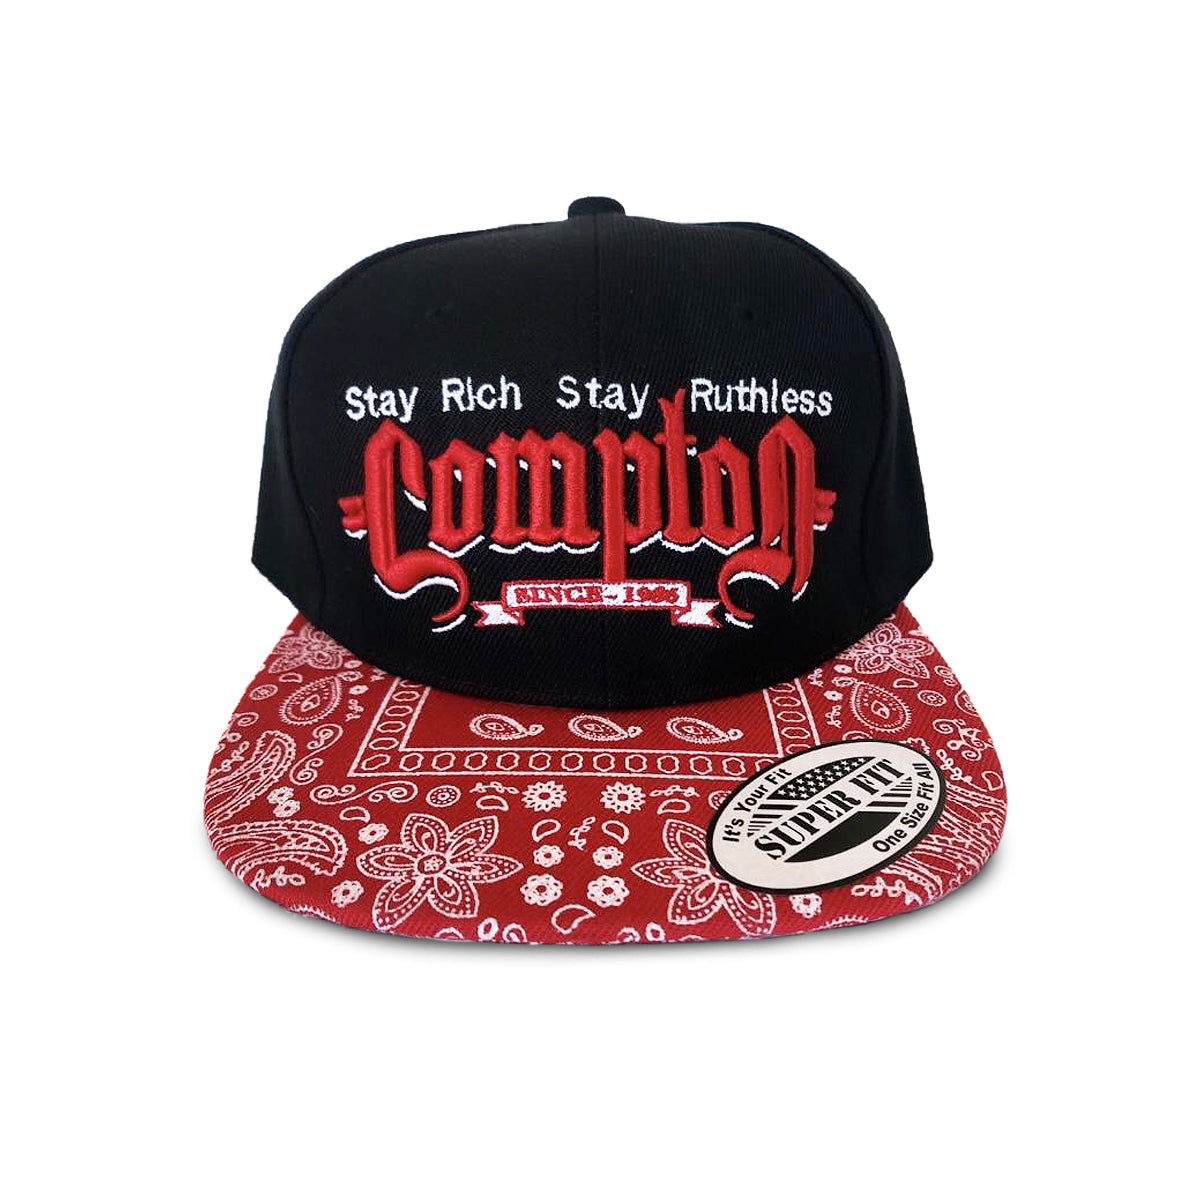 Stay Rich & Ruthless Compton Hat (Black/Red Paisley)